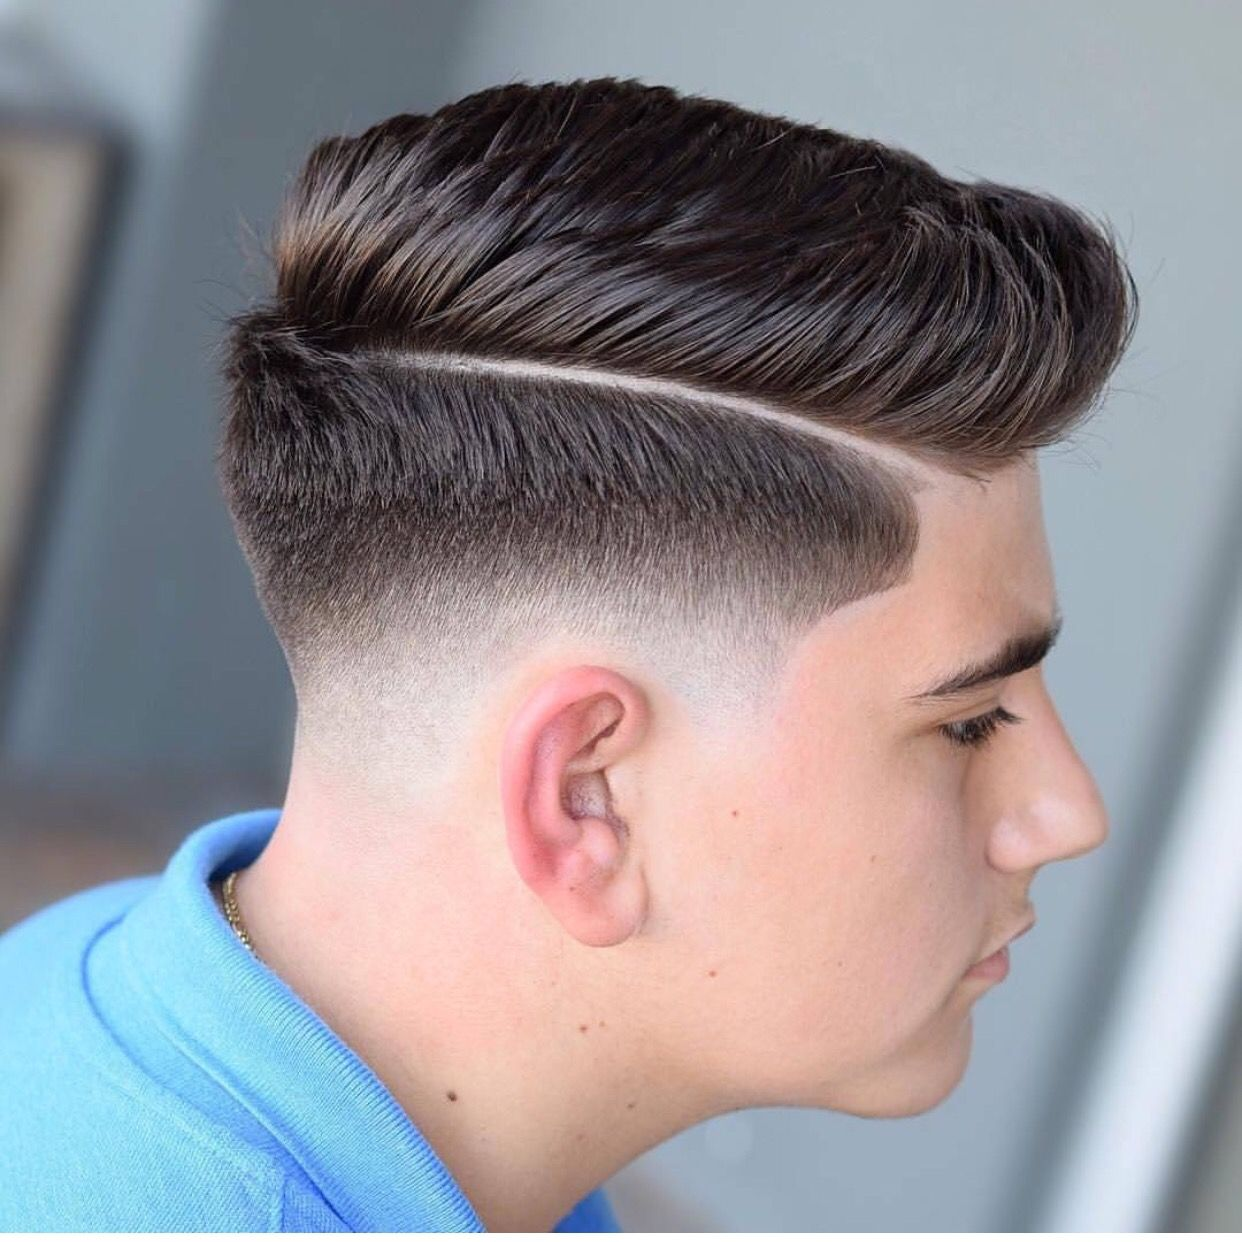 Haircut styles for men fades pin by vijayrajaharma on vja  pinterest  haircuts hair cuts and